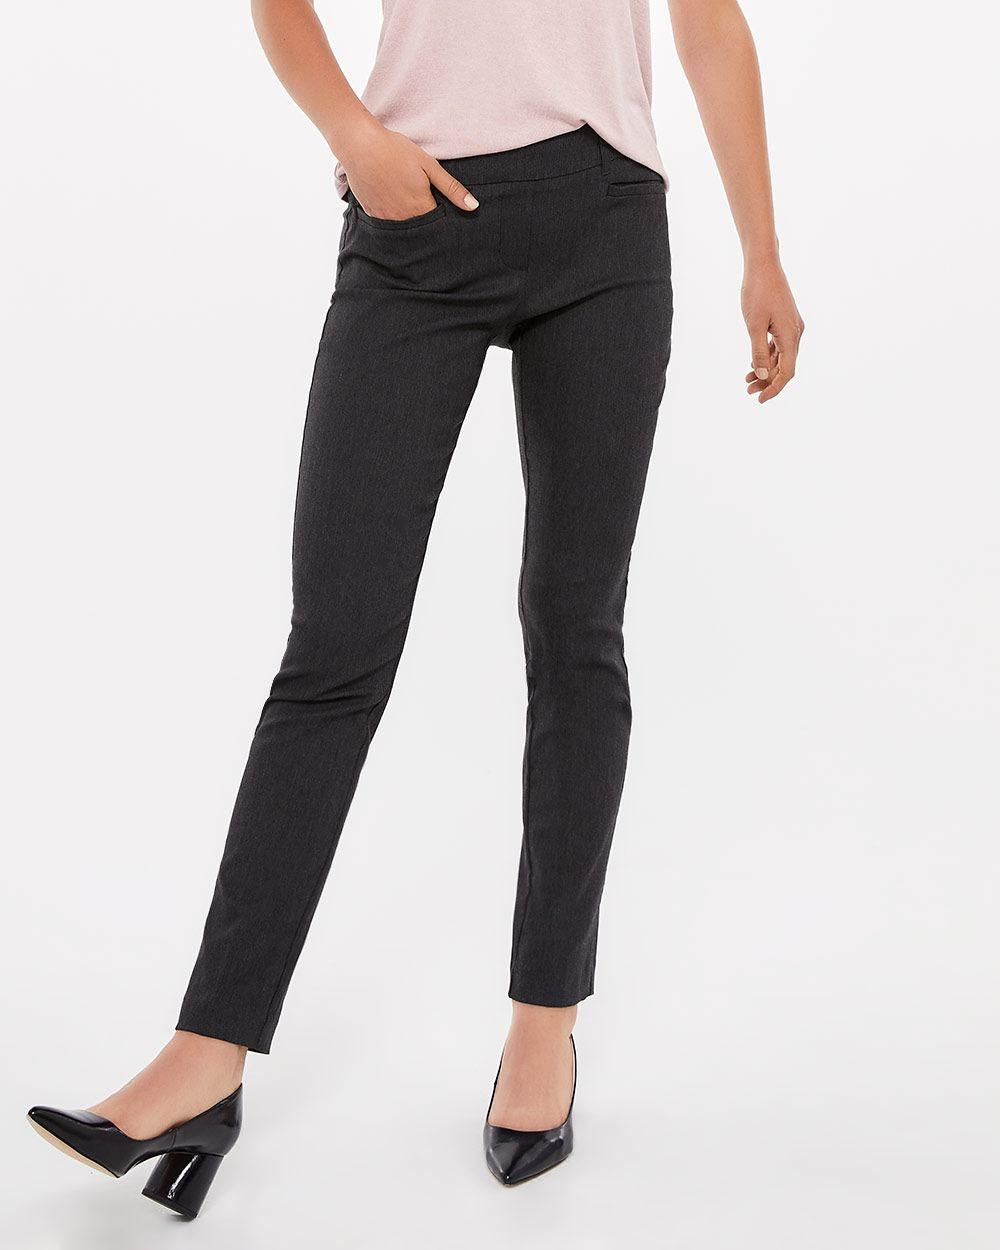 The Tall Iconic Straight Leg Grey Melange Pants